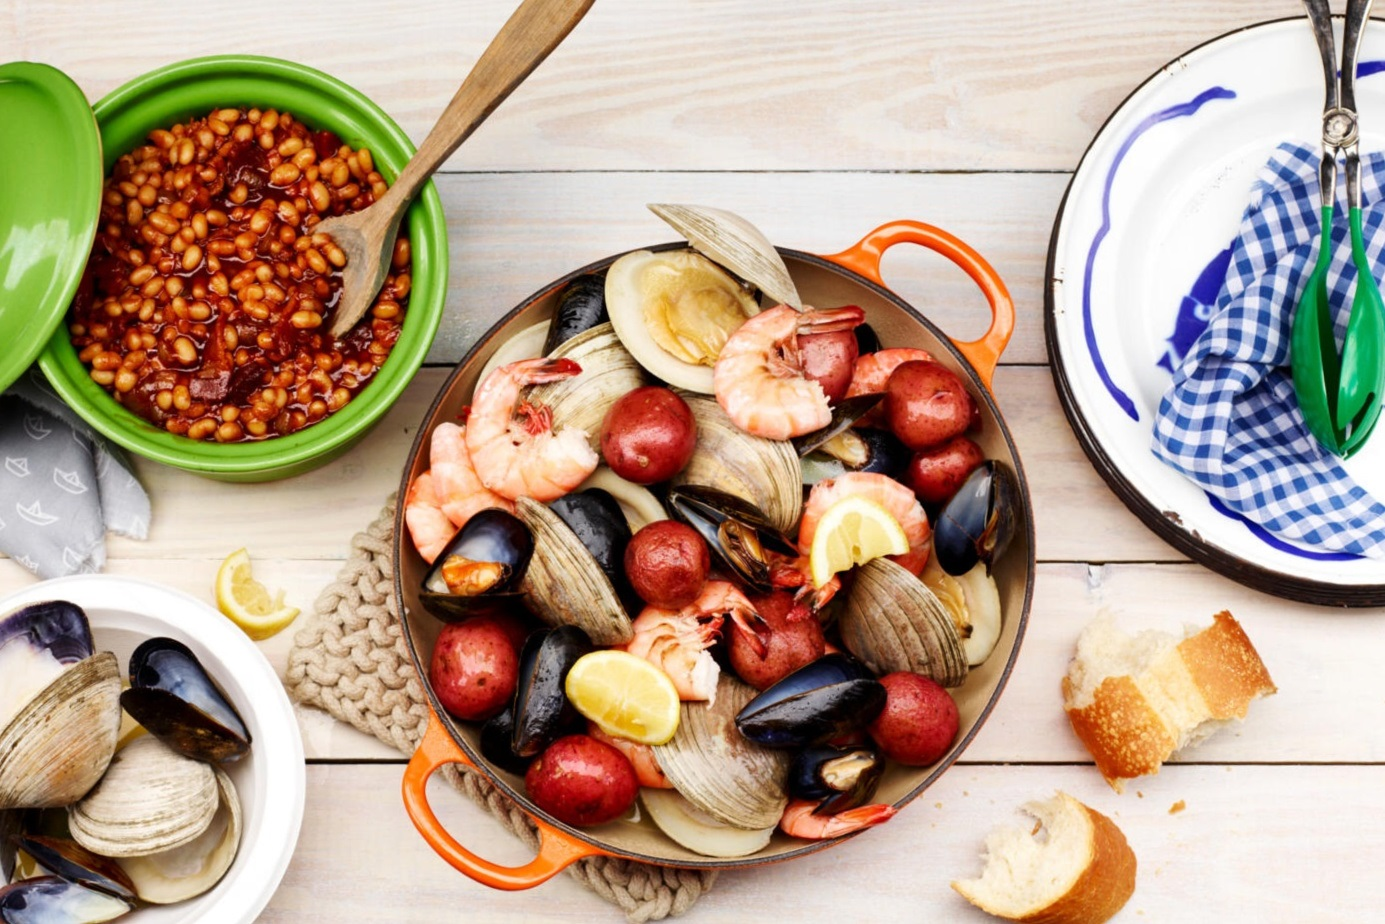 overhead view of a seafood menu with boiled shrimp, clams, mussels, and potatoes served with baked beans and bread